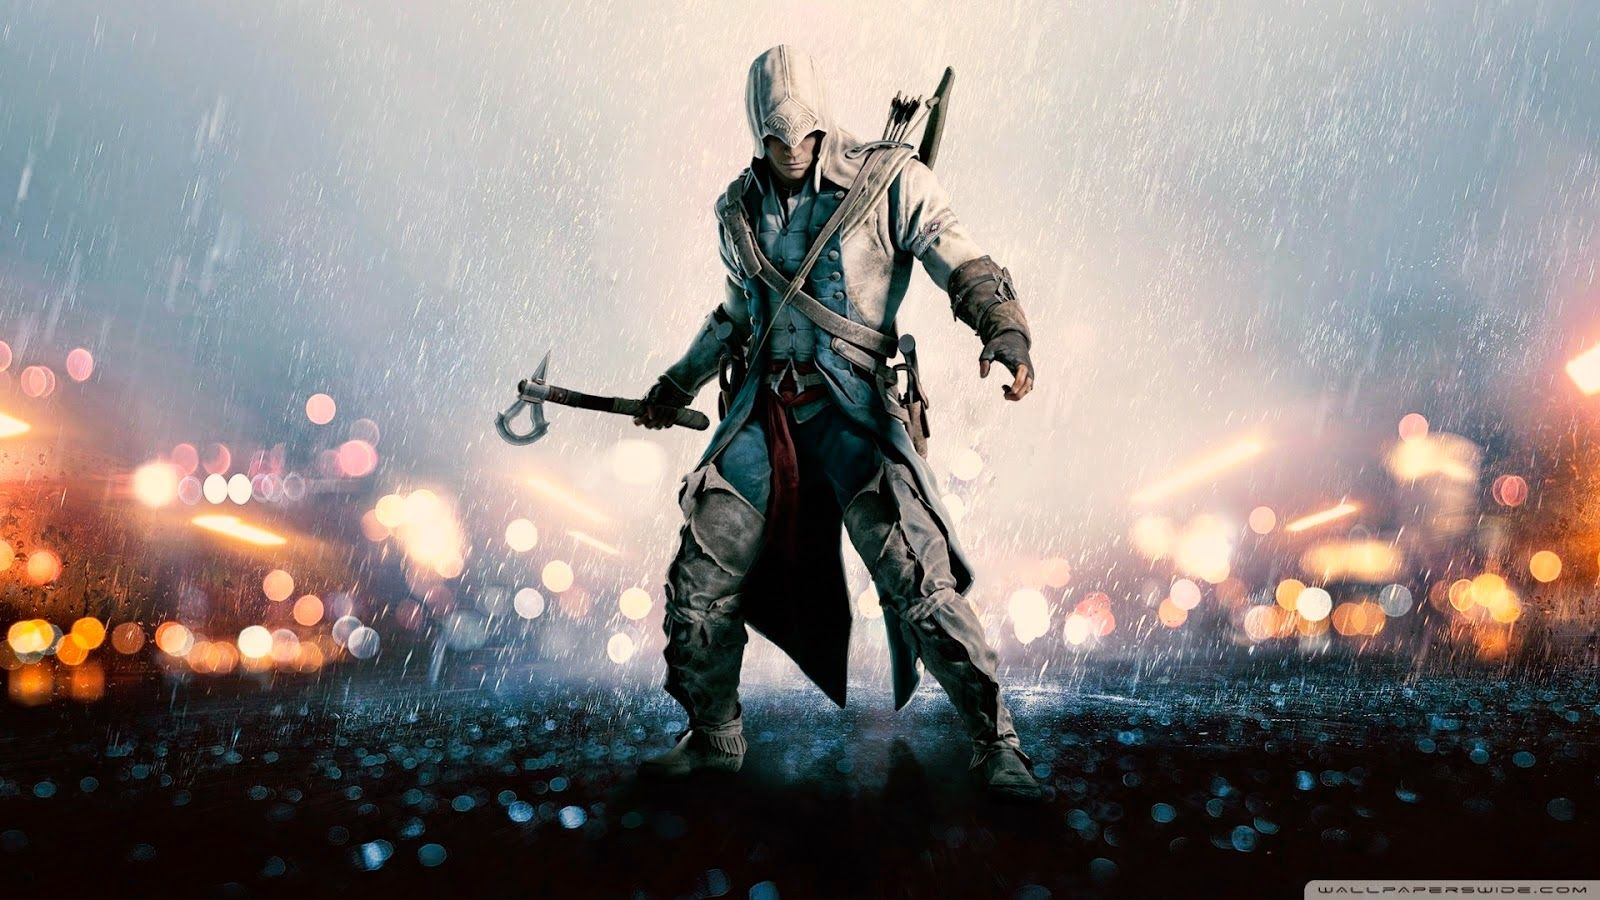 The Best Wallpapers For Your Desktop Just Gaming Blog Most Epic 1600×900 Epic Game Wallpapers ...